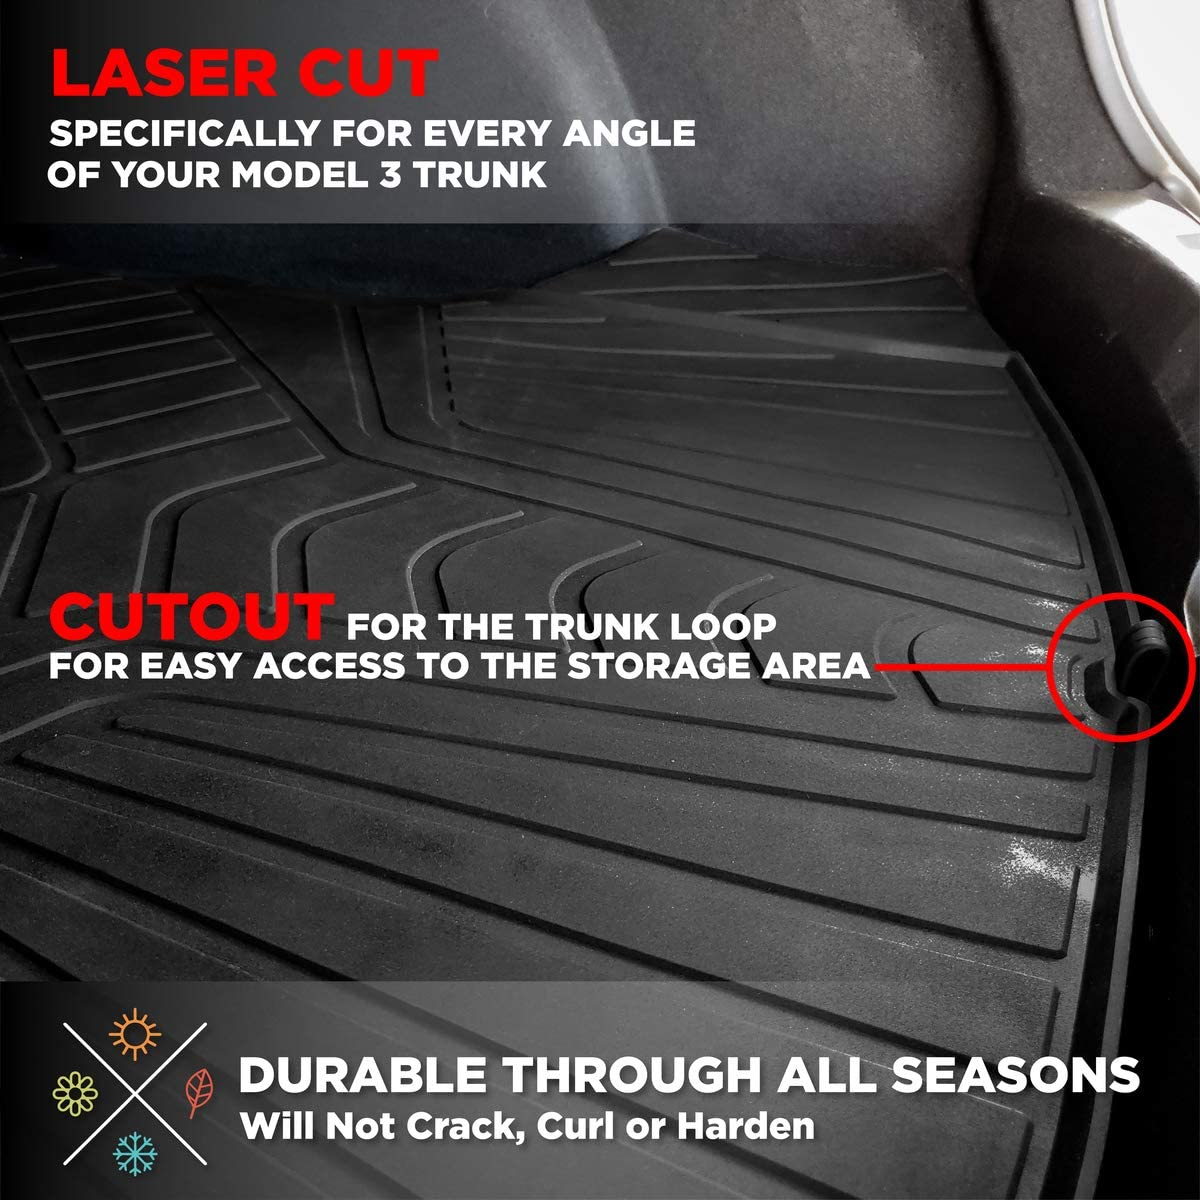 Heavy Duty /& Flexible Eco-Friendly All Season Latex Material by HEA Complete Mat Set Floor, Trunk, Frunk, Storage Accessories All Weather Mat Fits 2017-2020 #1 Tesla Model 3 Floor /& Trunk Mats